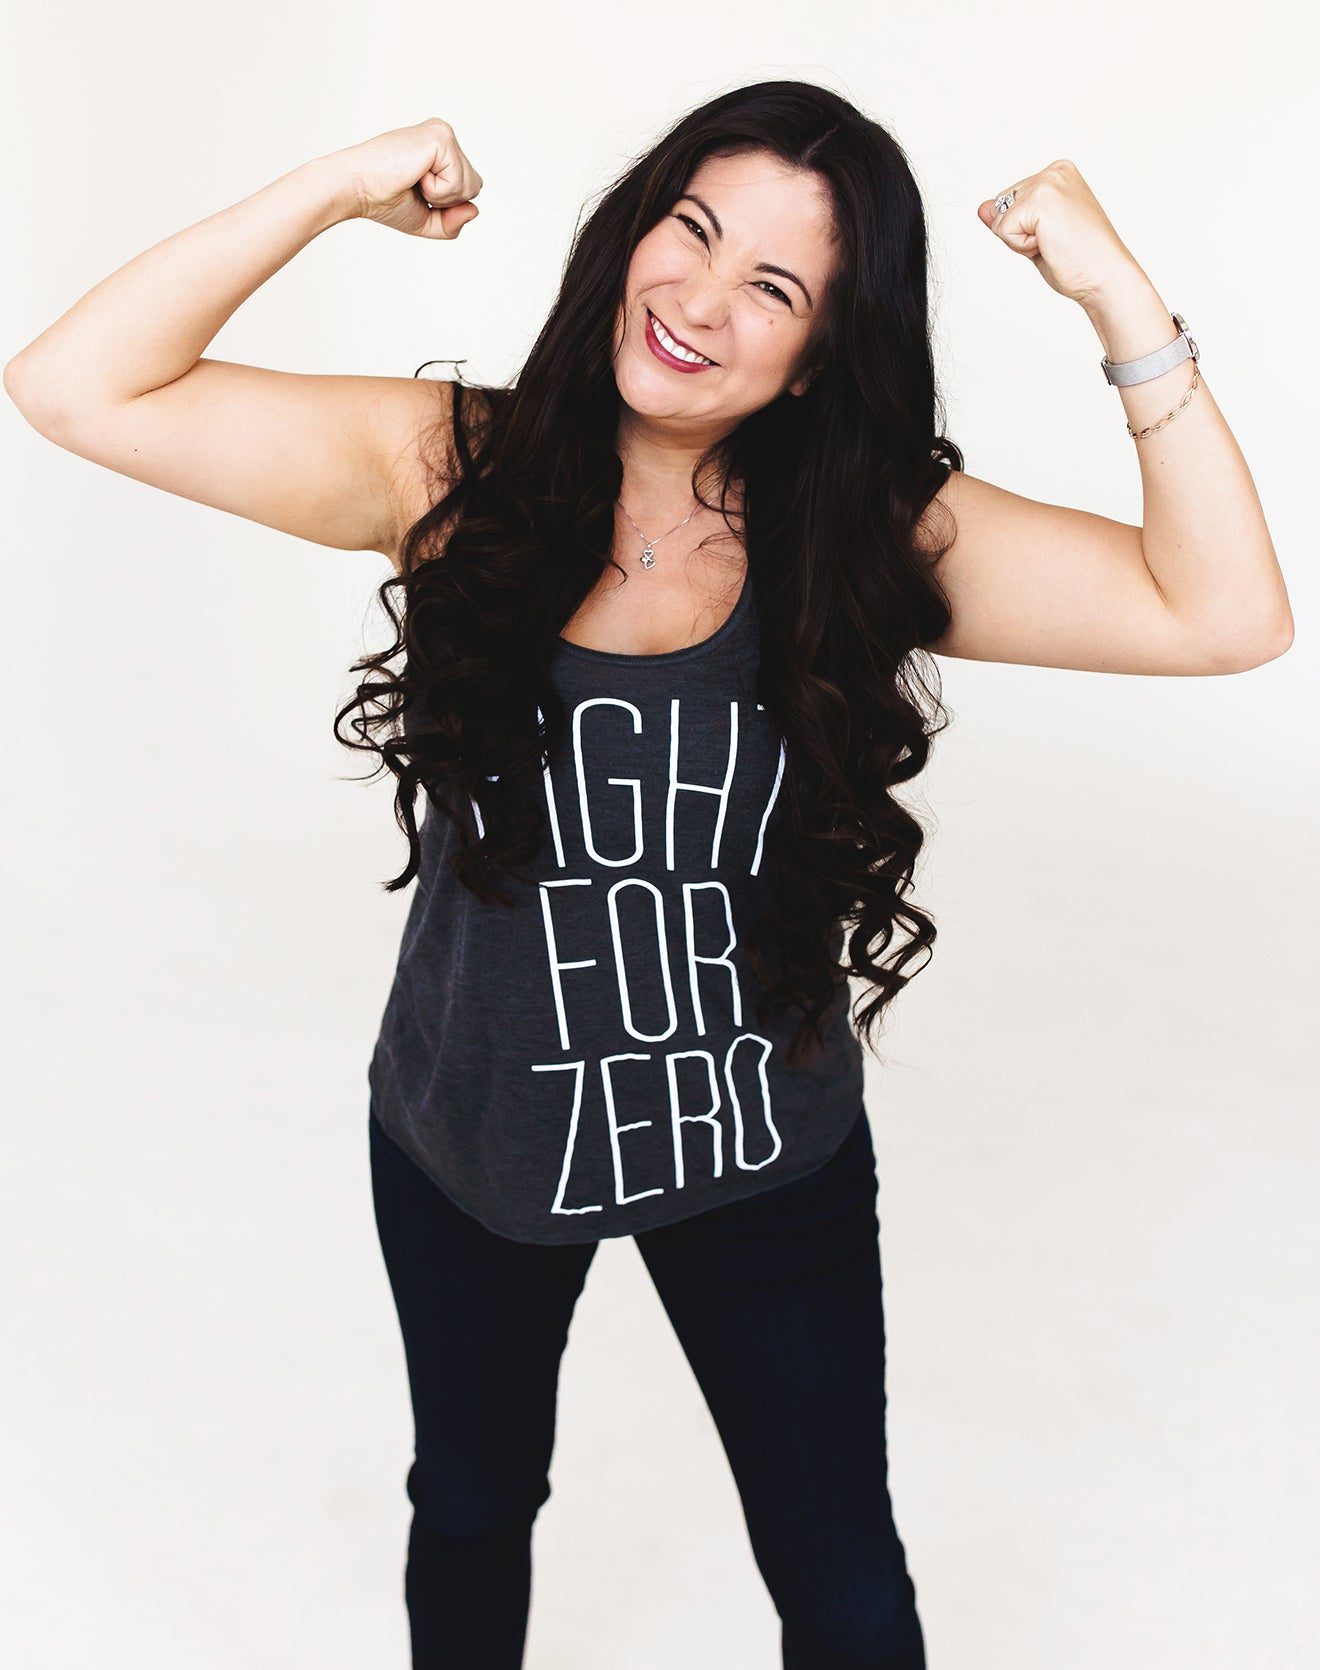 Women's Gray Tank - Fight for Zero